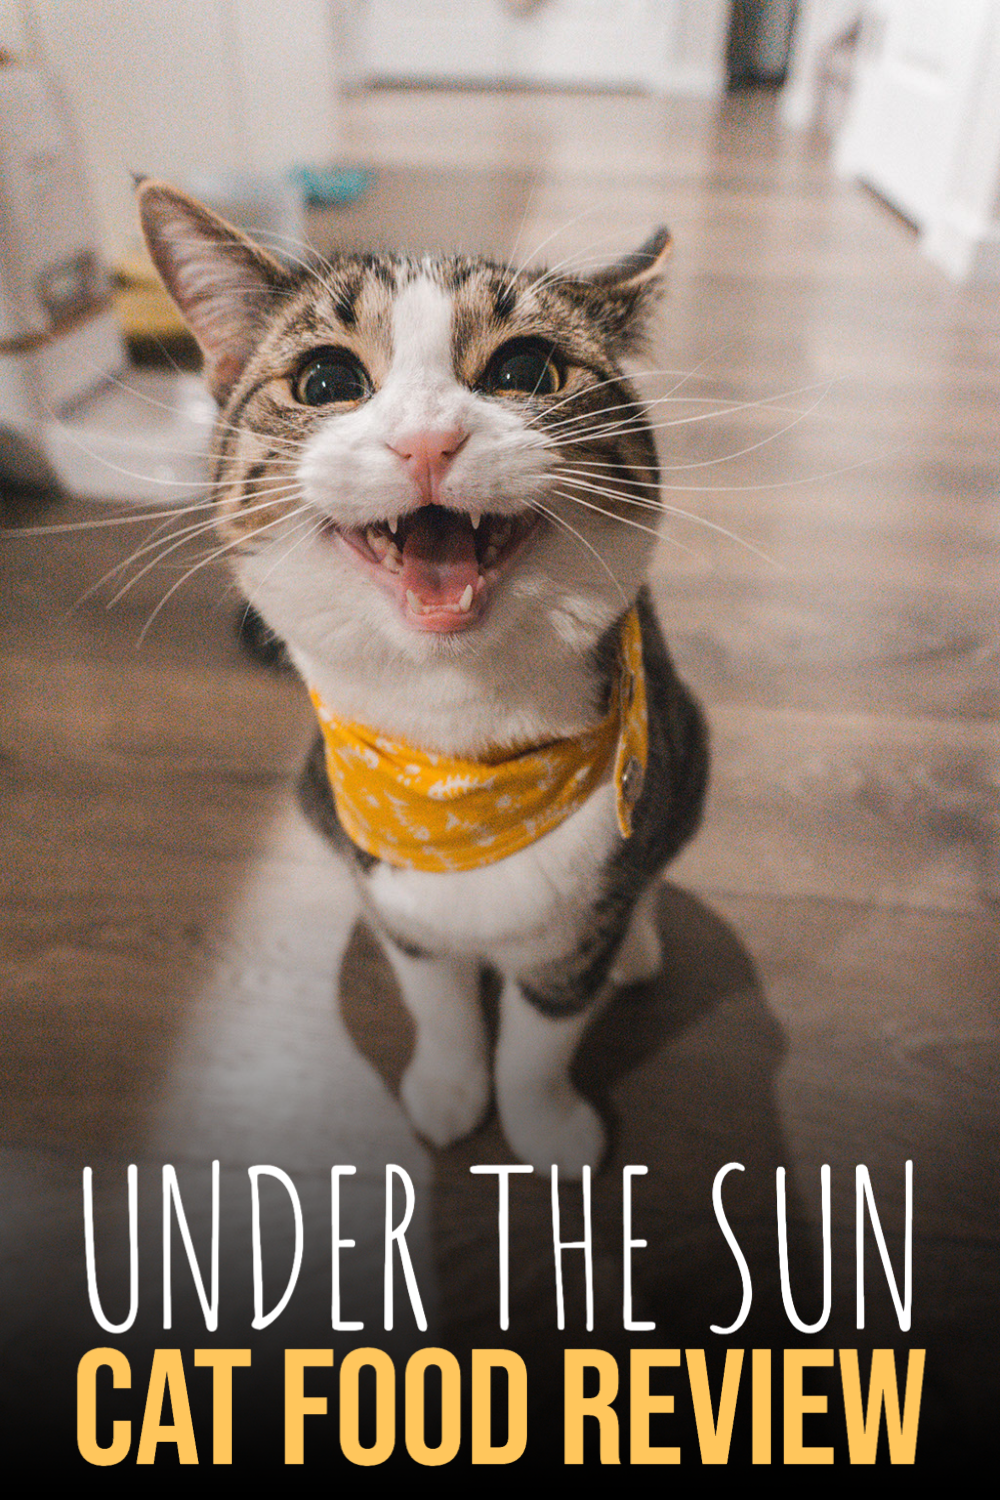 Under The Sun Cat Food Review In 2020 Best Cat Food Cat Food Cat Food Reviews